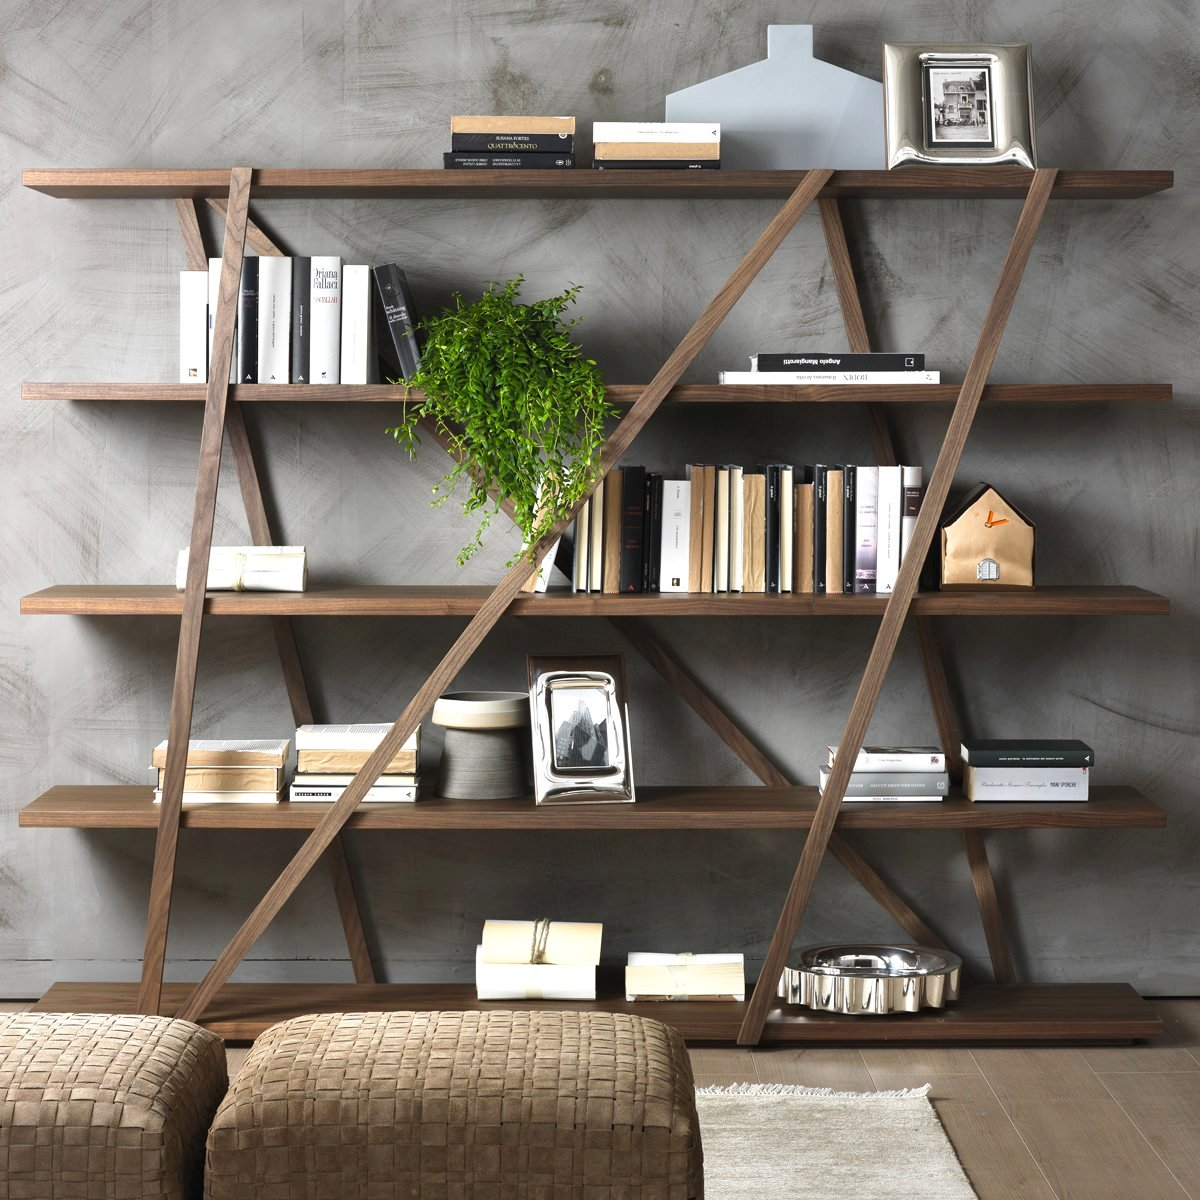 Shop Shelving & Storage Furniture at Urban Avenue